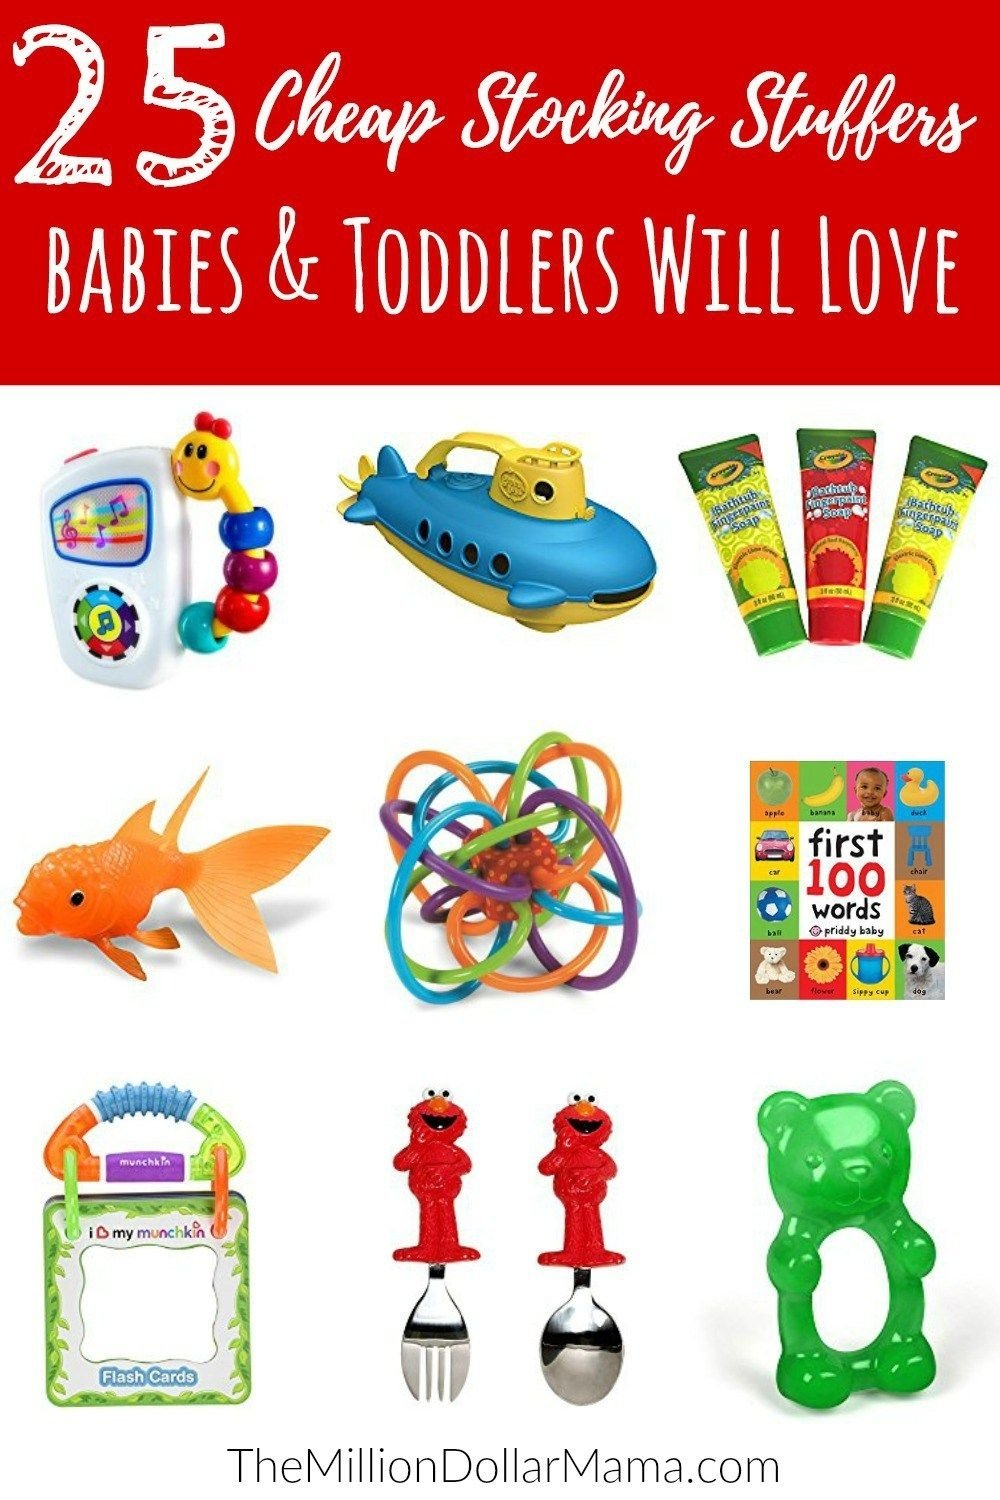 25 cheap stocking stuffer ideas for babies & toddlers | stocking